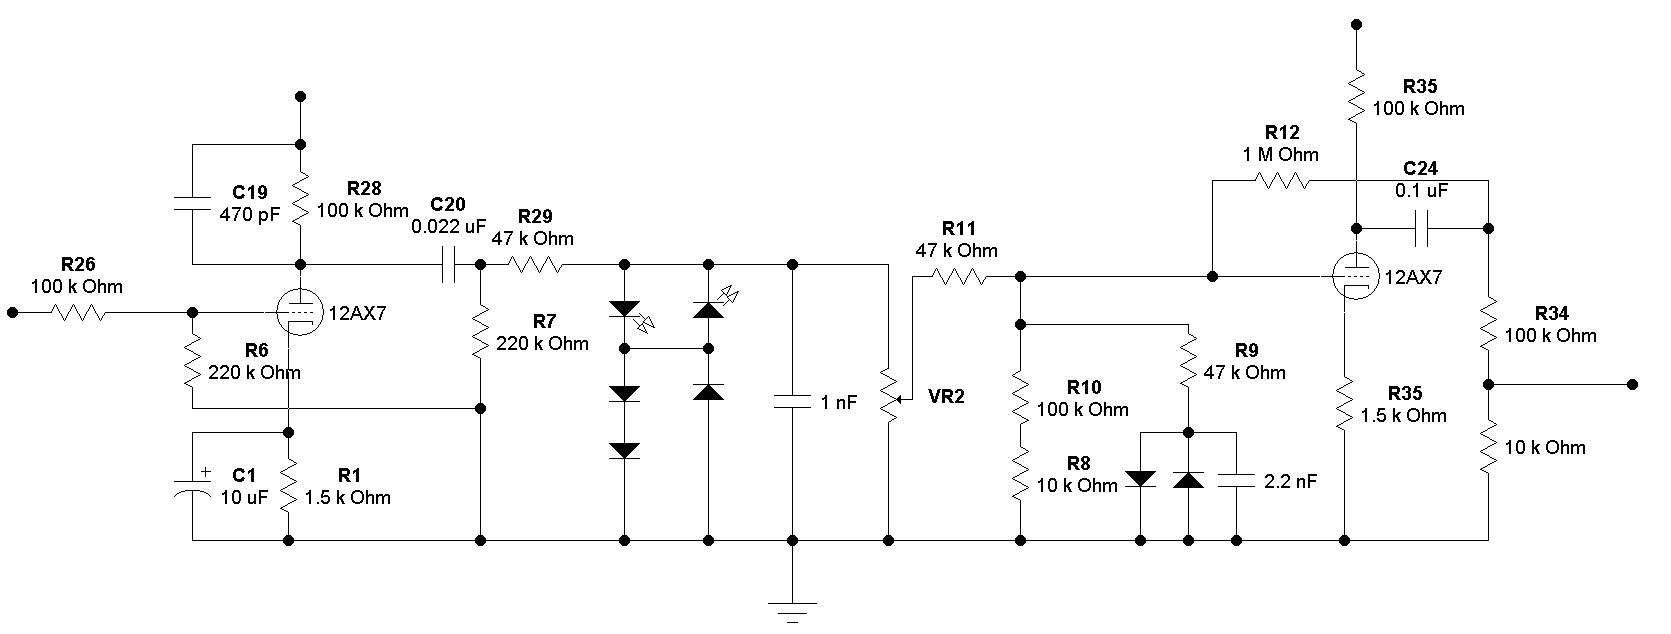 Silver Jubilee Preamp Gain Stage Assignments Layout . . . . |  MarshallForum.comMarshall Forum